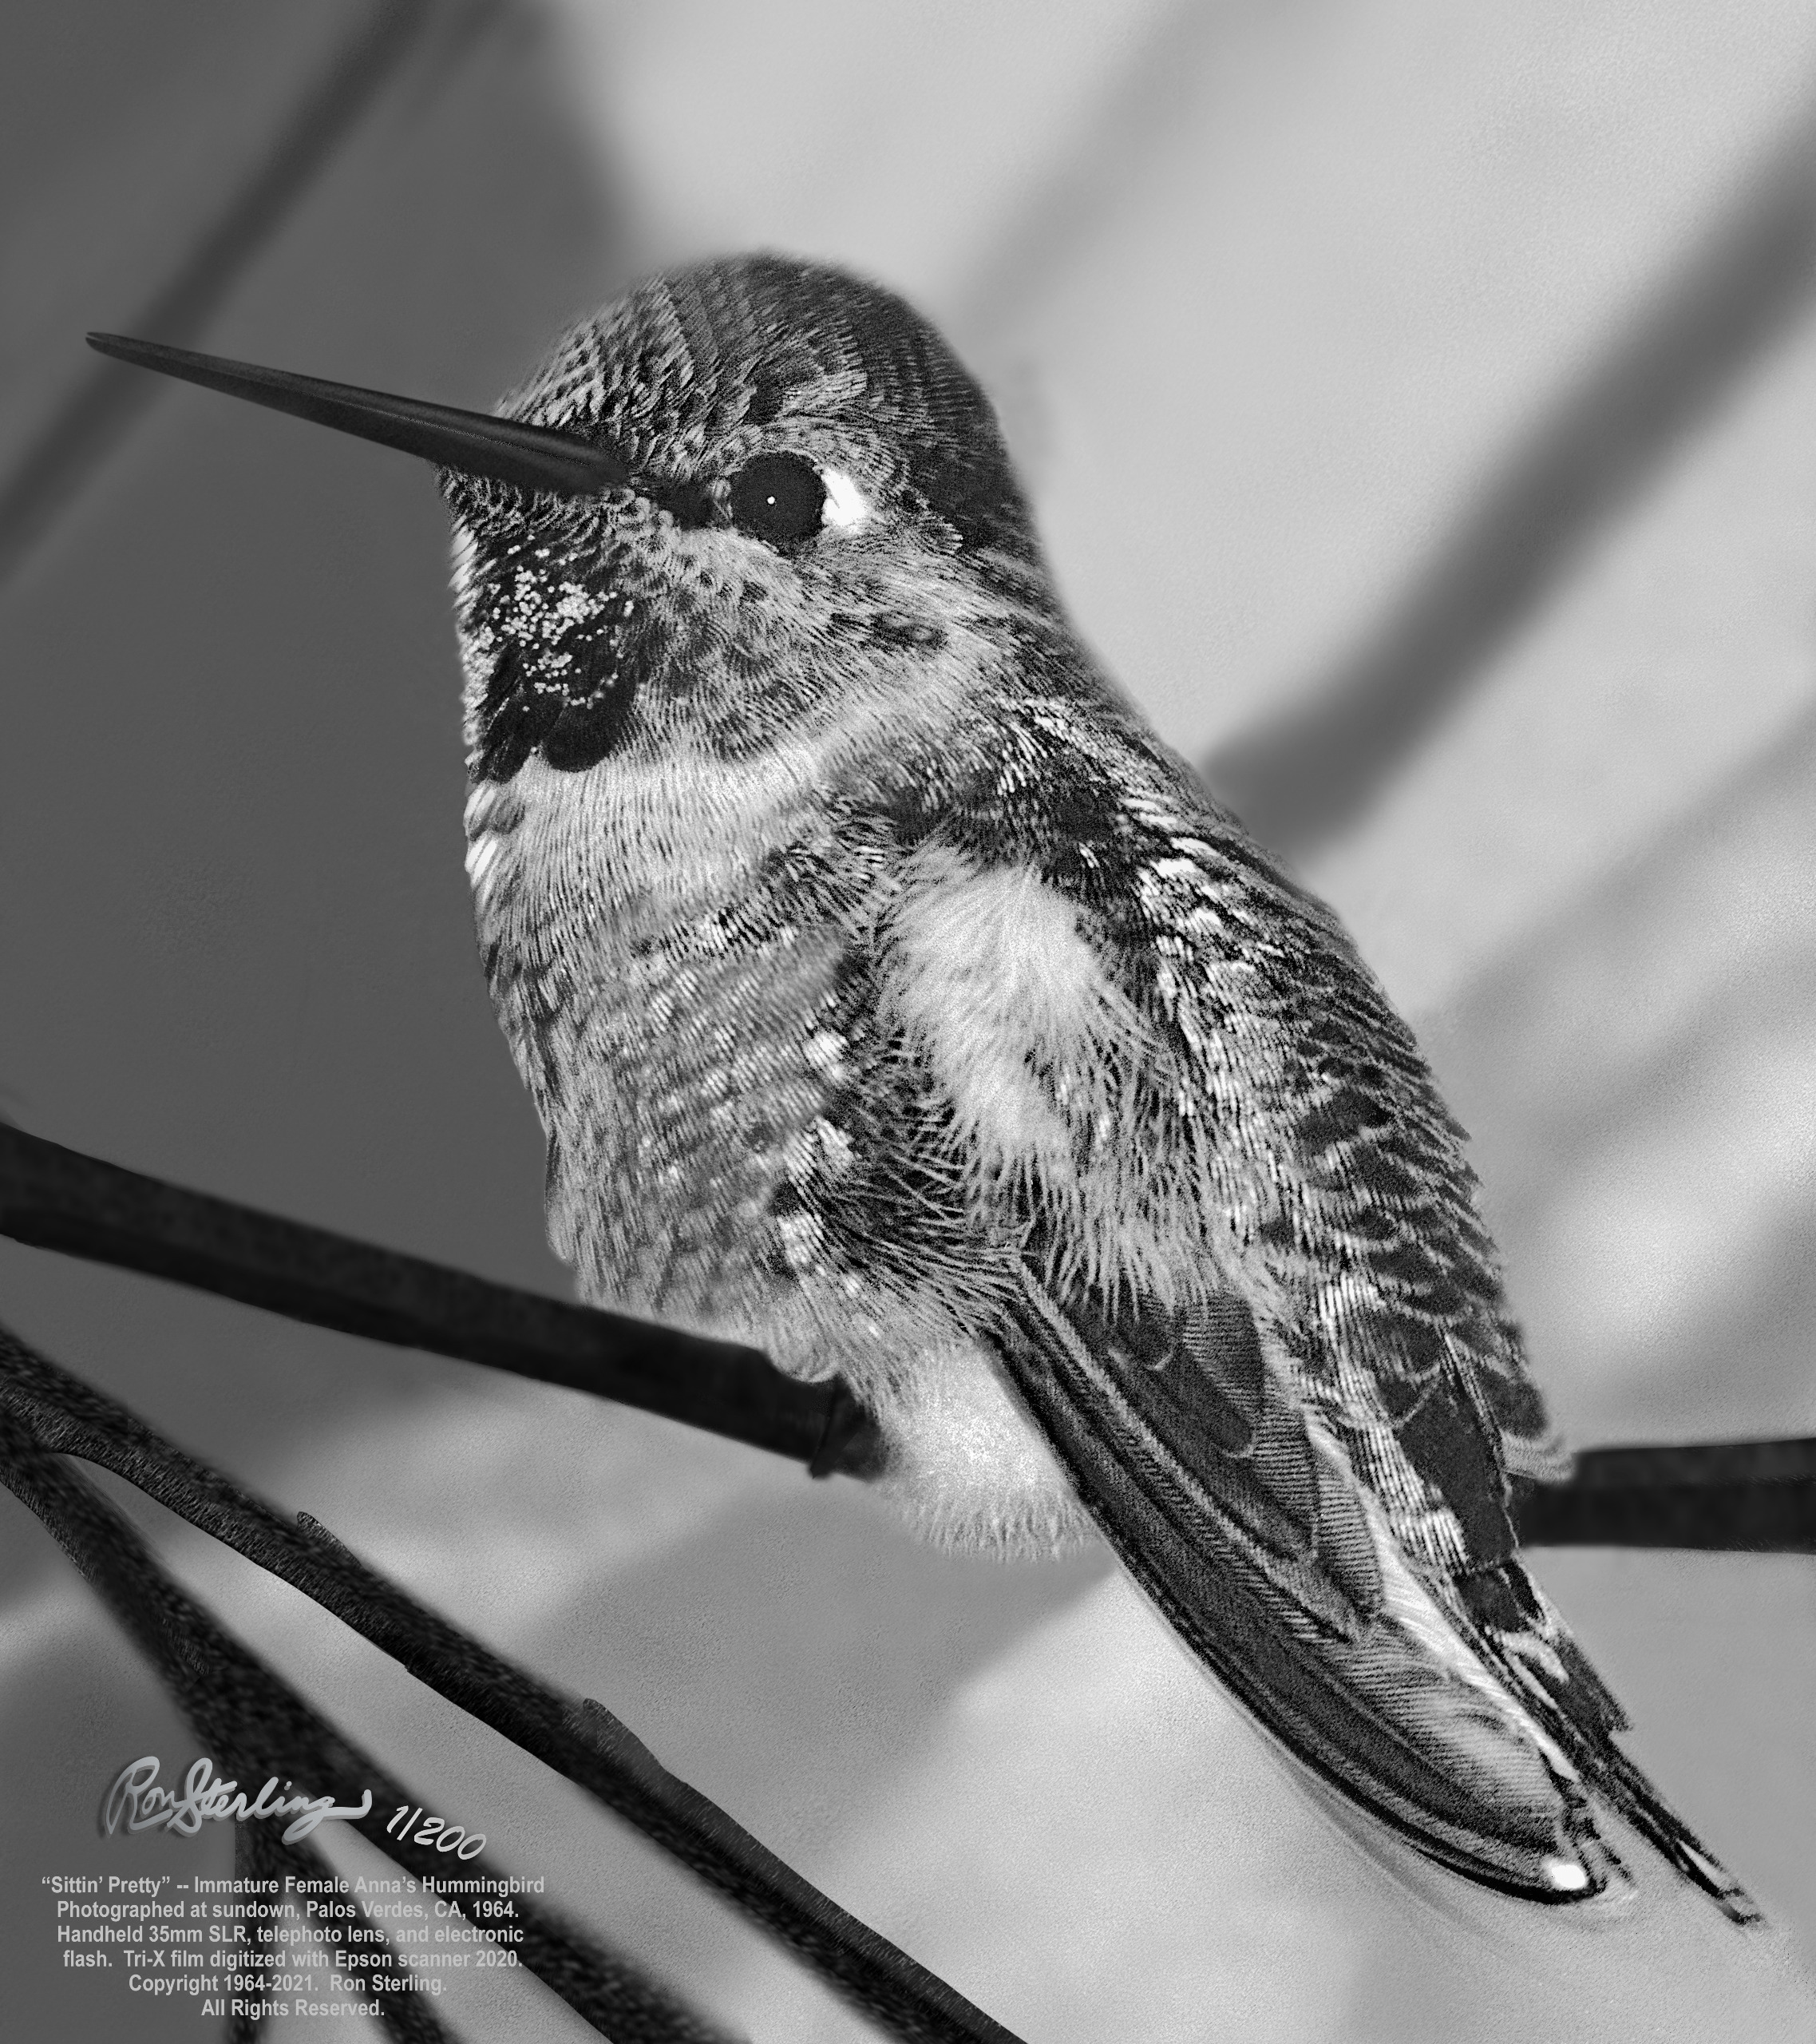 Exquisite New Print from Vintage 35mm Black and White Film, Hummingbird in Ansel Adams Style